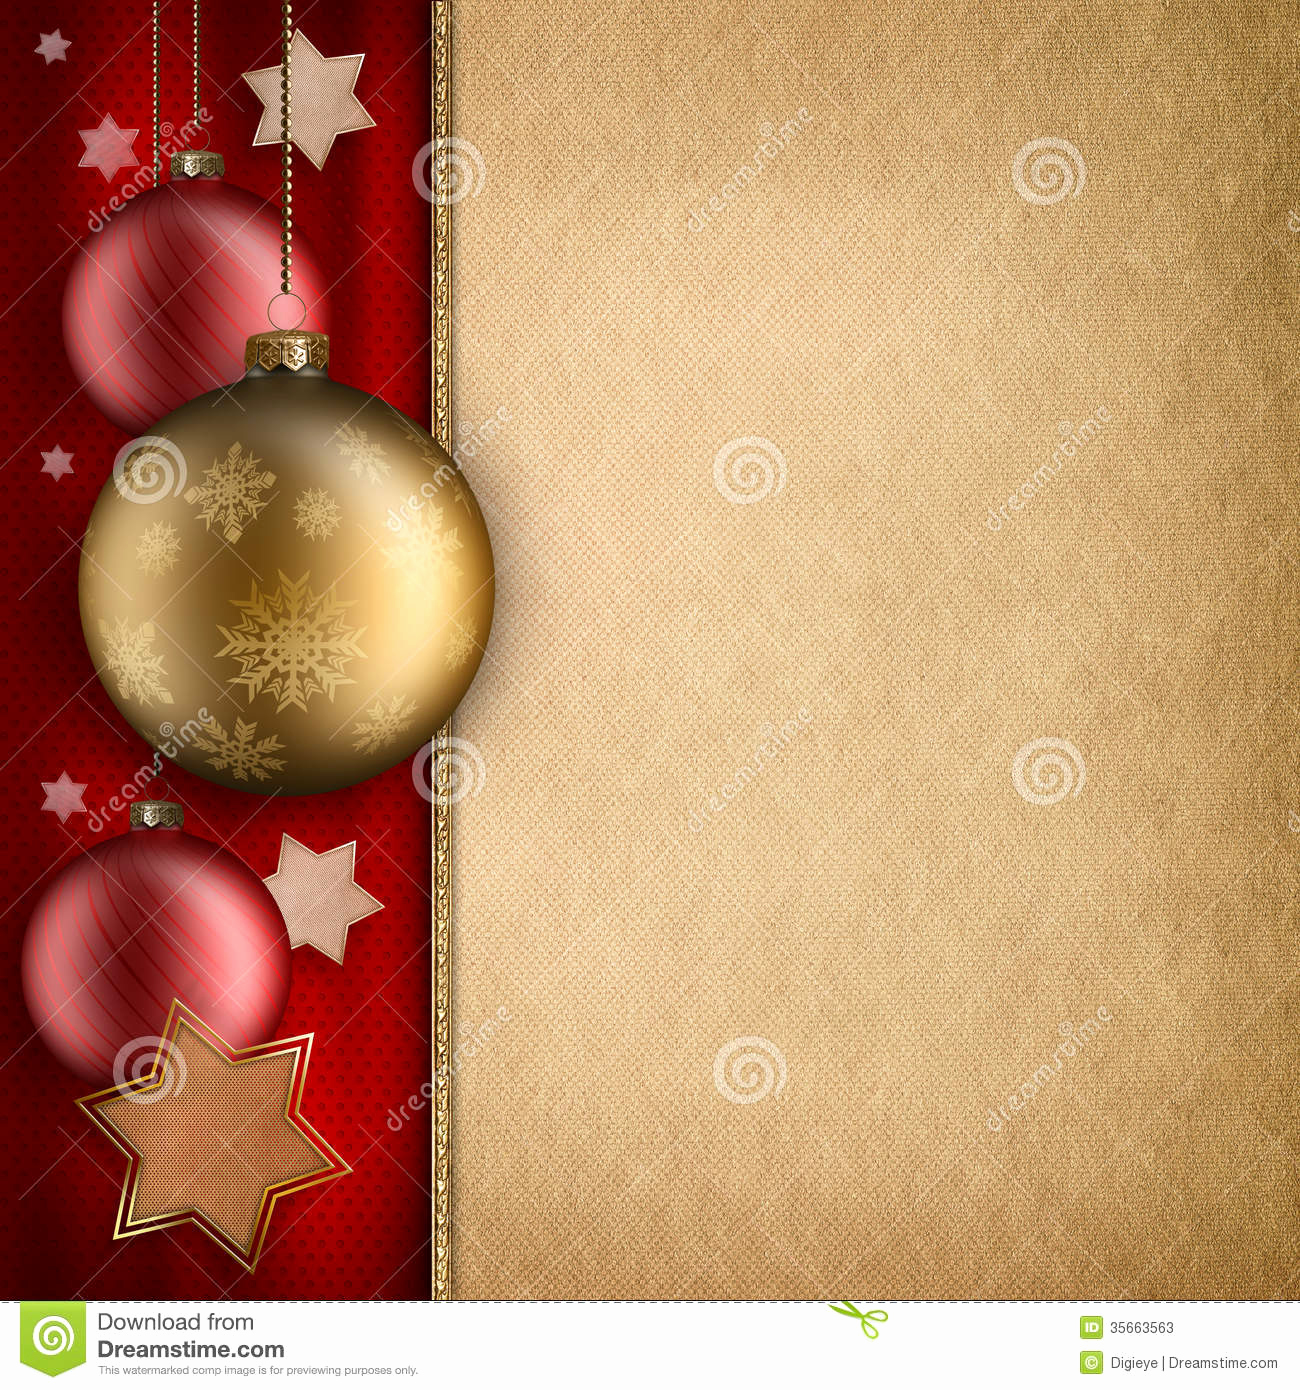 Free Christmas Templates for Word Beautiful Christmas Card Template Baulbles and Stars Stock